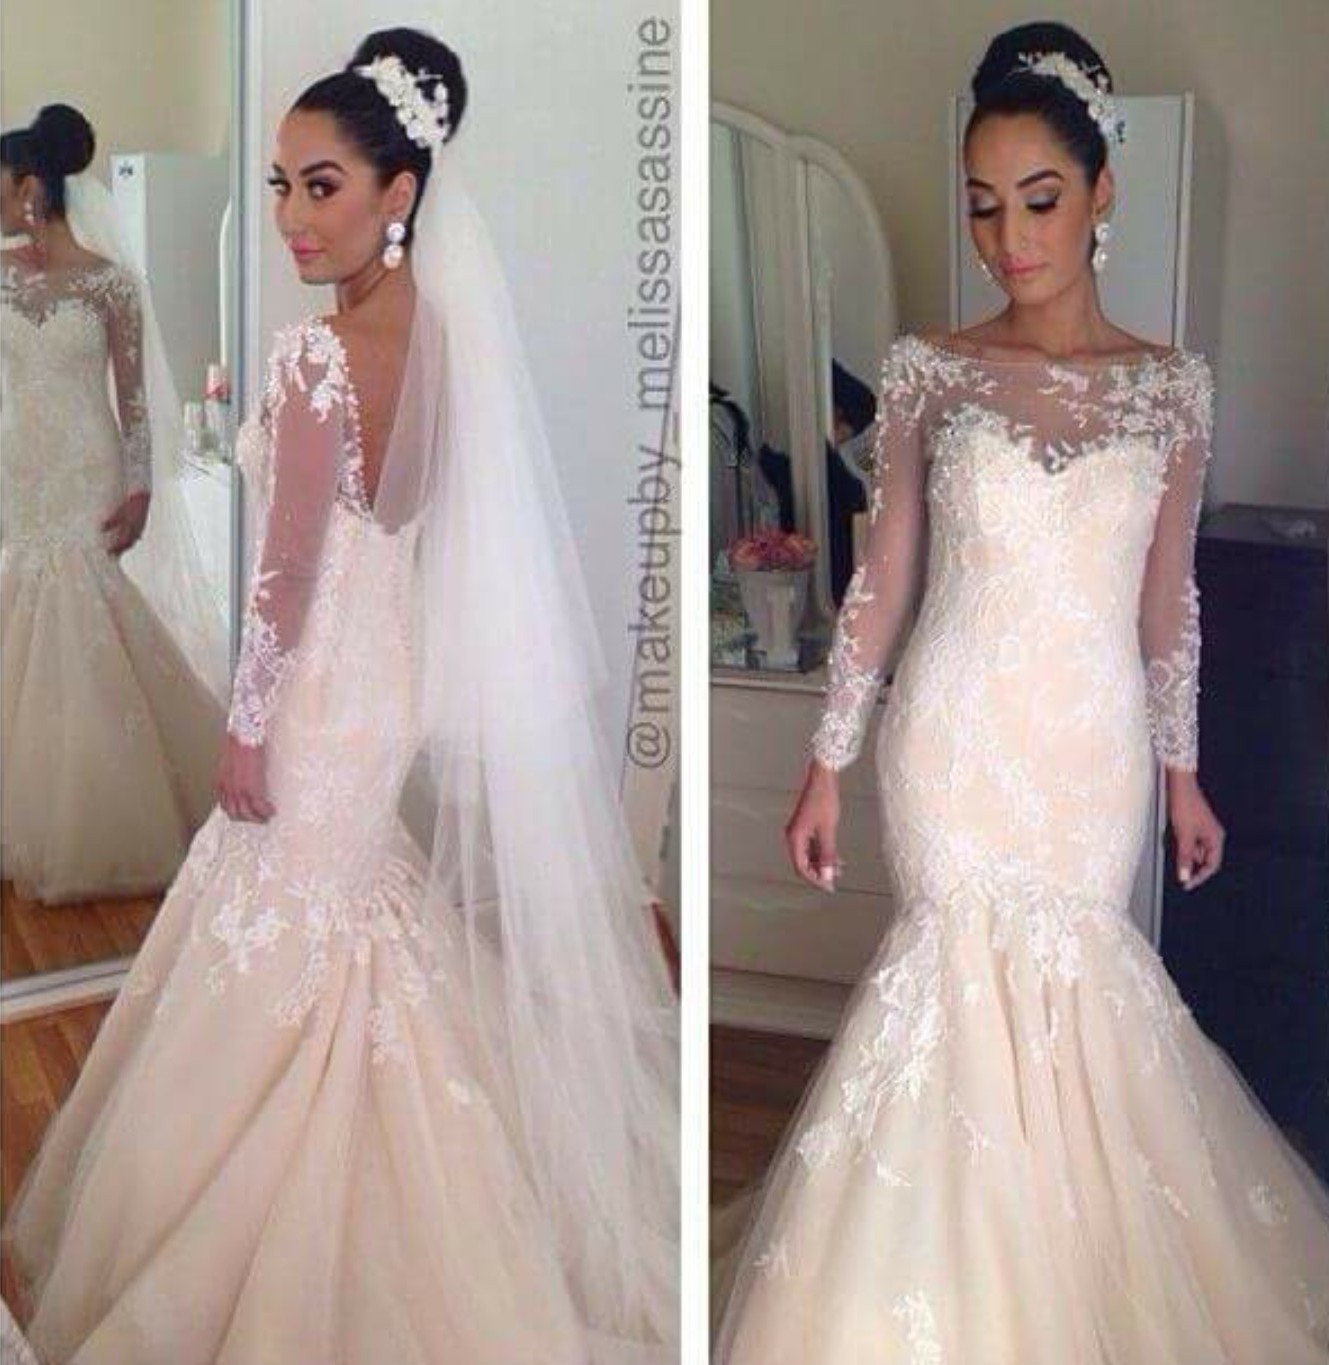 Preowned Wedding Gowns: Steven Khalil Used Wedding Dress On Sale 68% Off